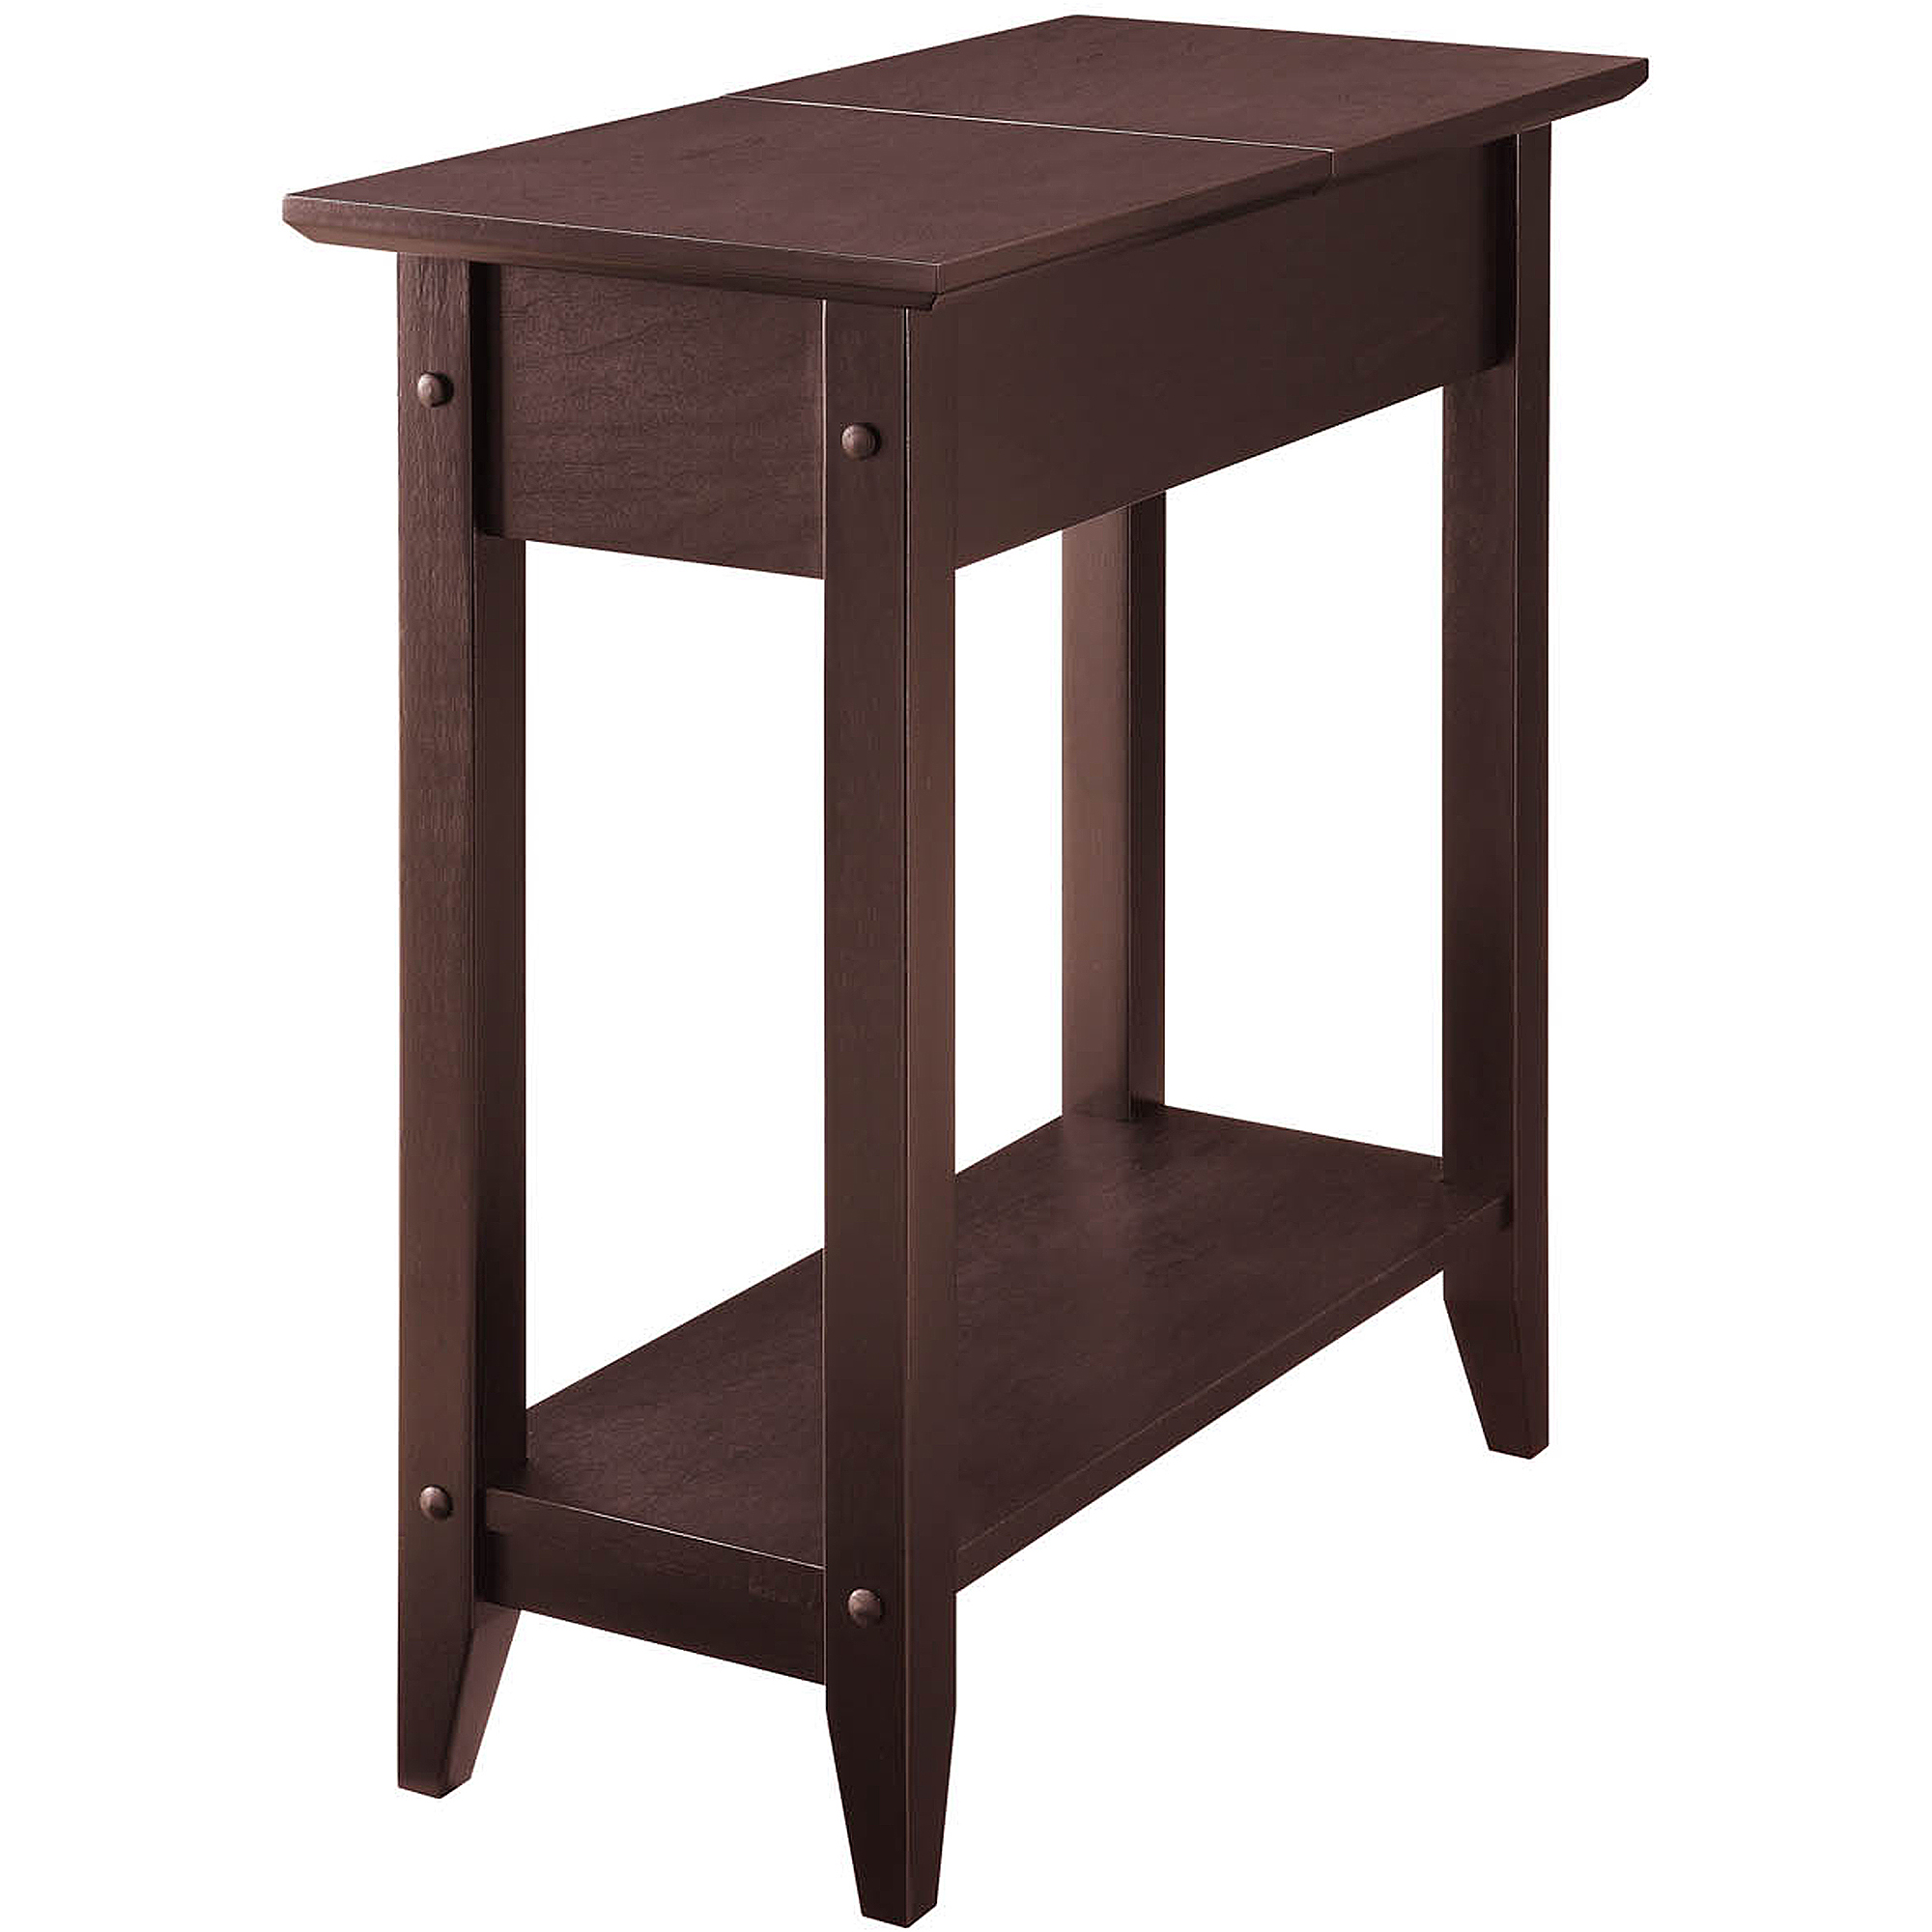 Attrayant American Heritage Flip Top Tall Side Table, Multiple Colors   Walmart.com